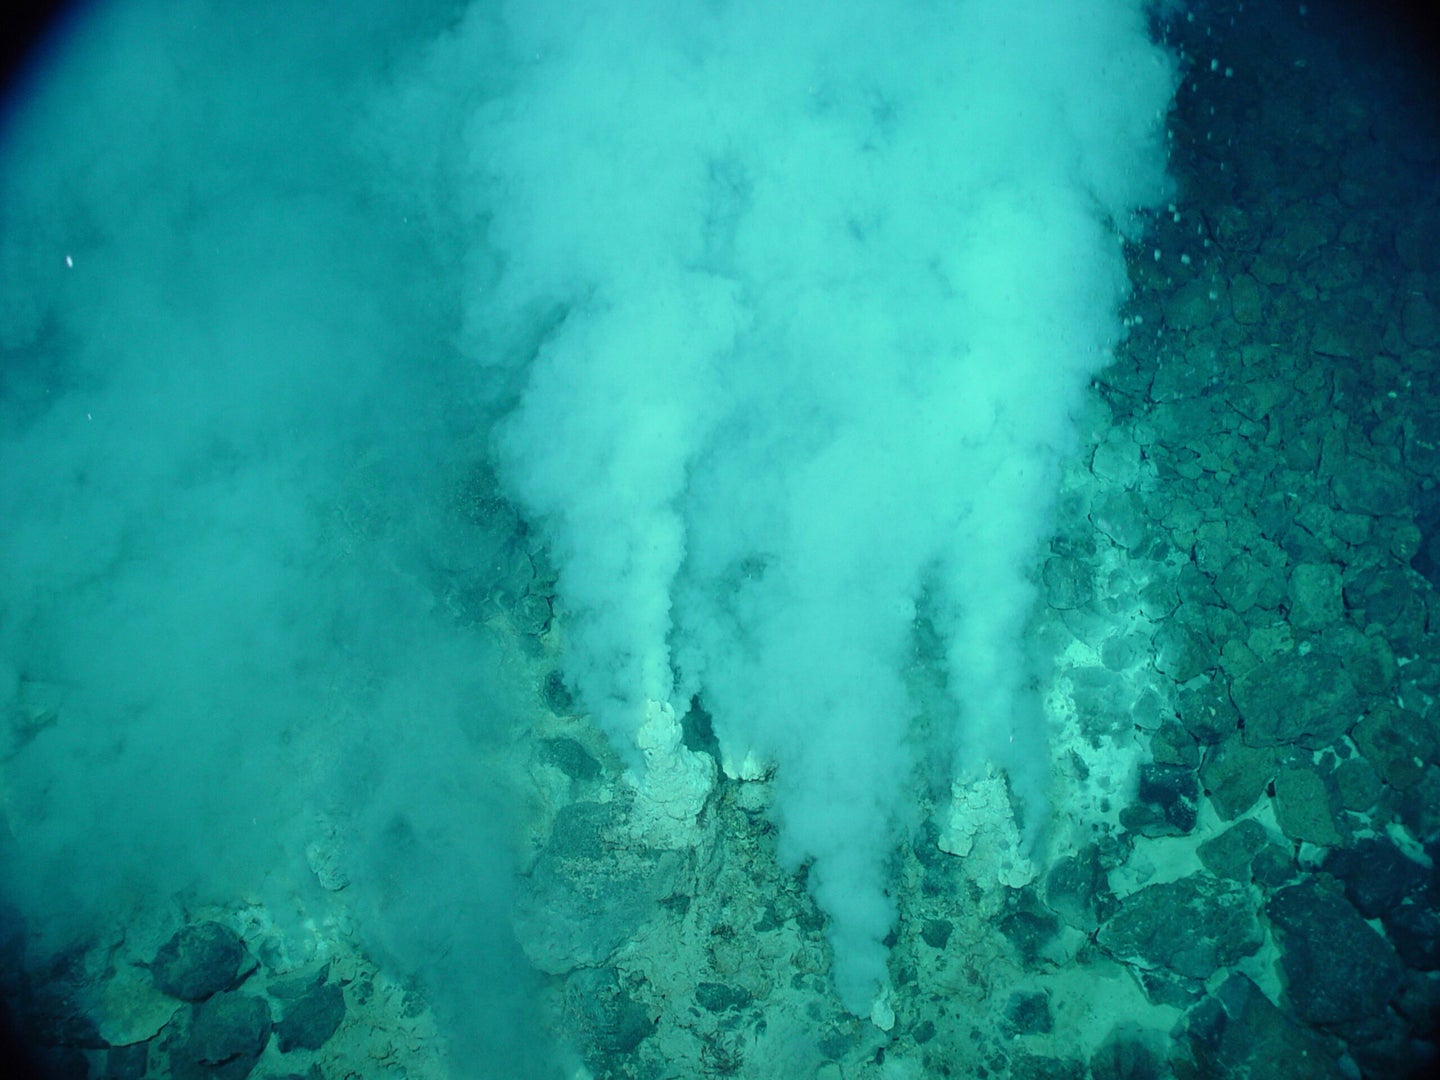 vents of white bubbles rising up from ocean floor